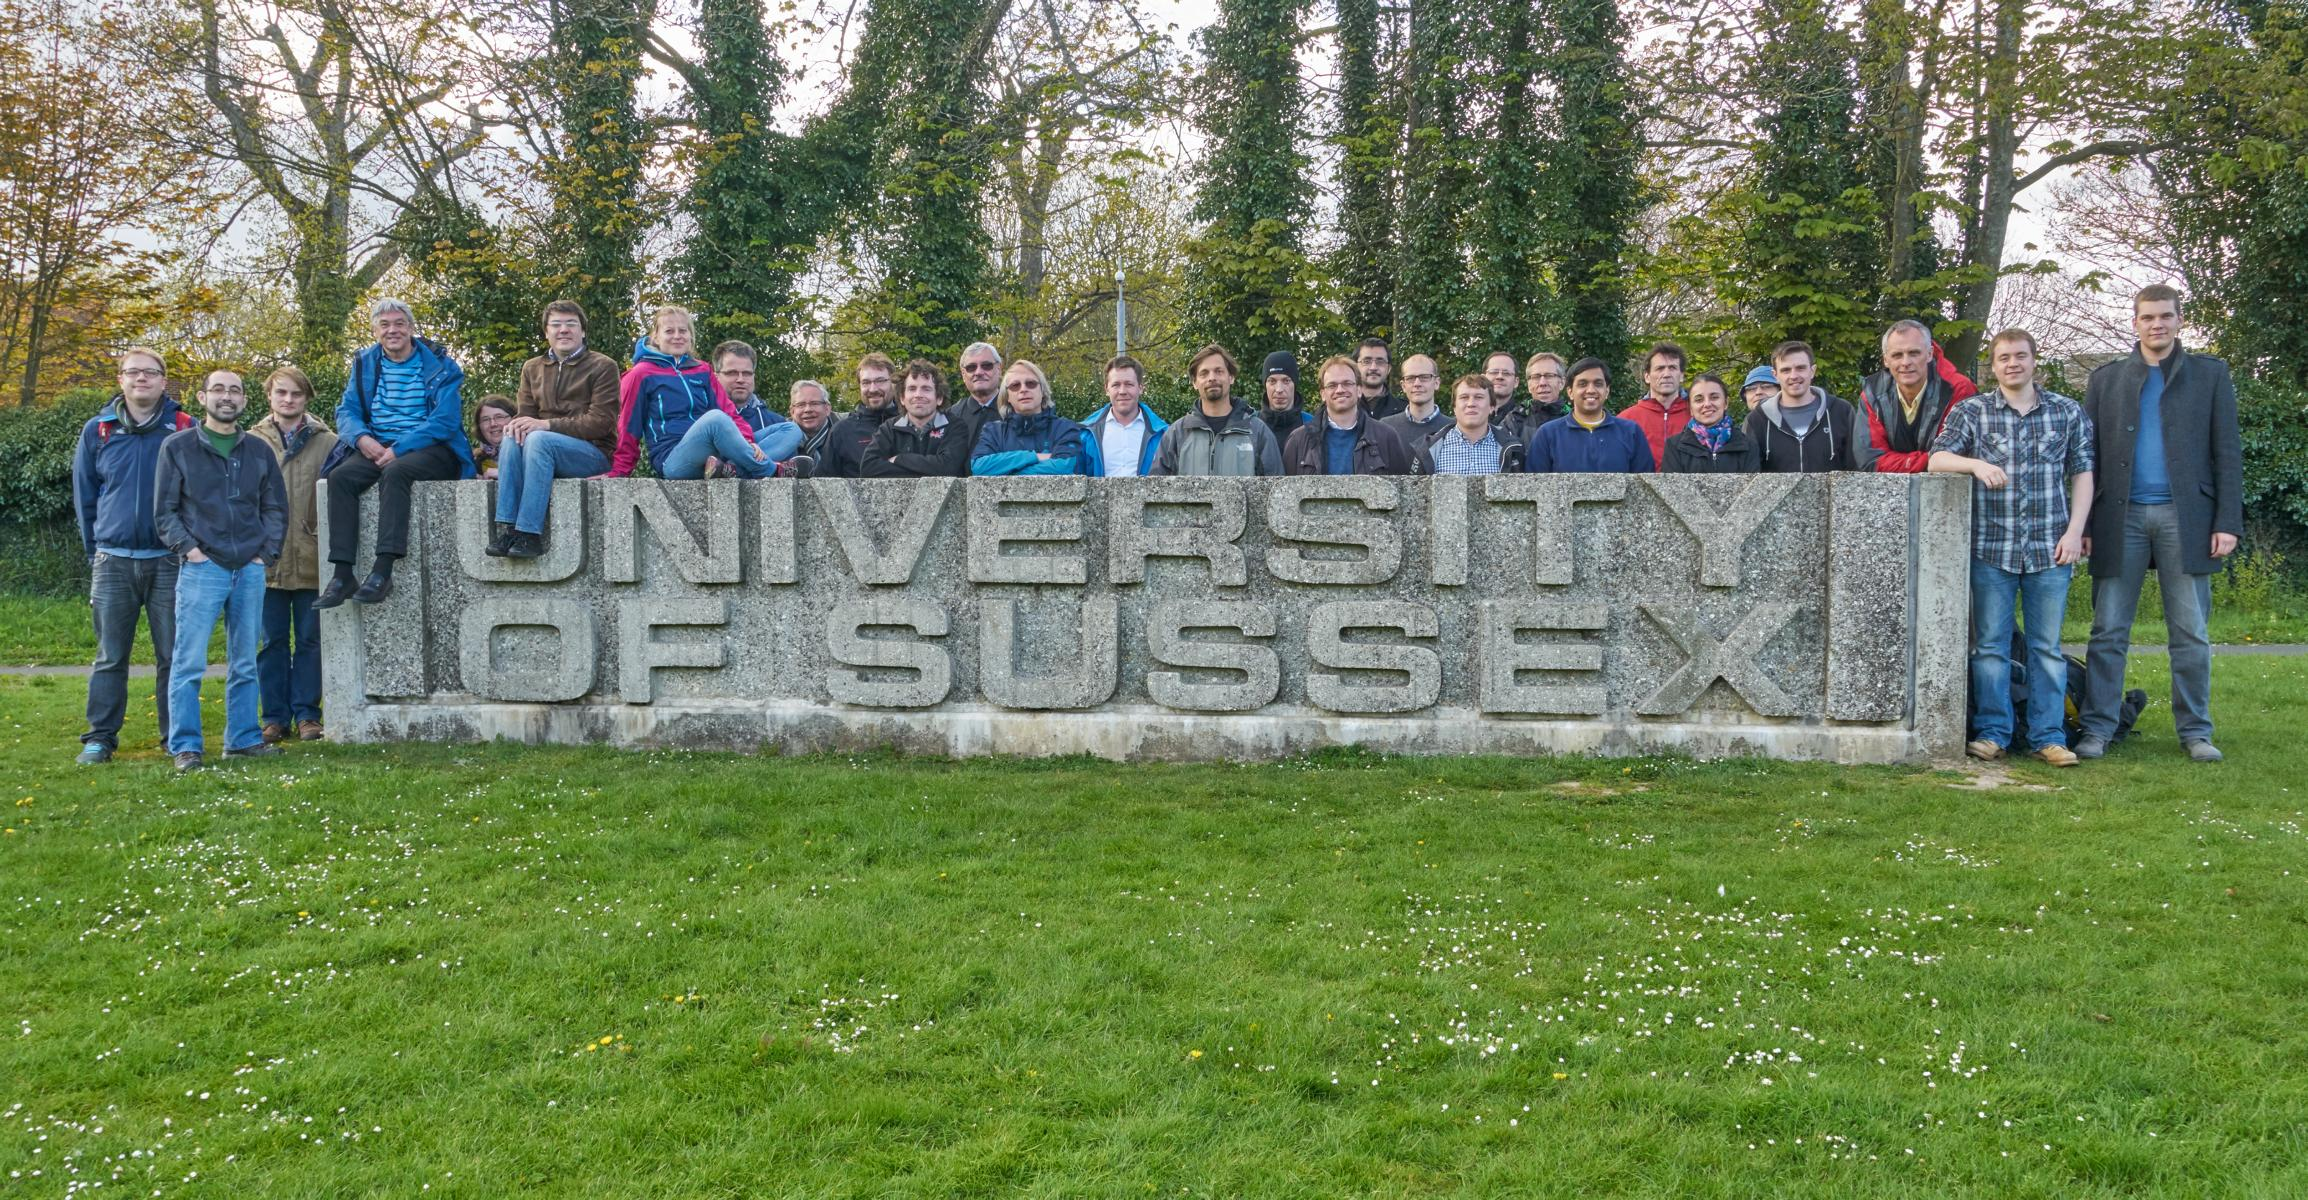 Picture taken at our collaboration meeting at University of Sussex, 29. April 2016